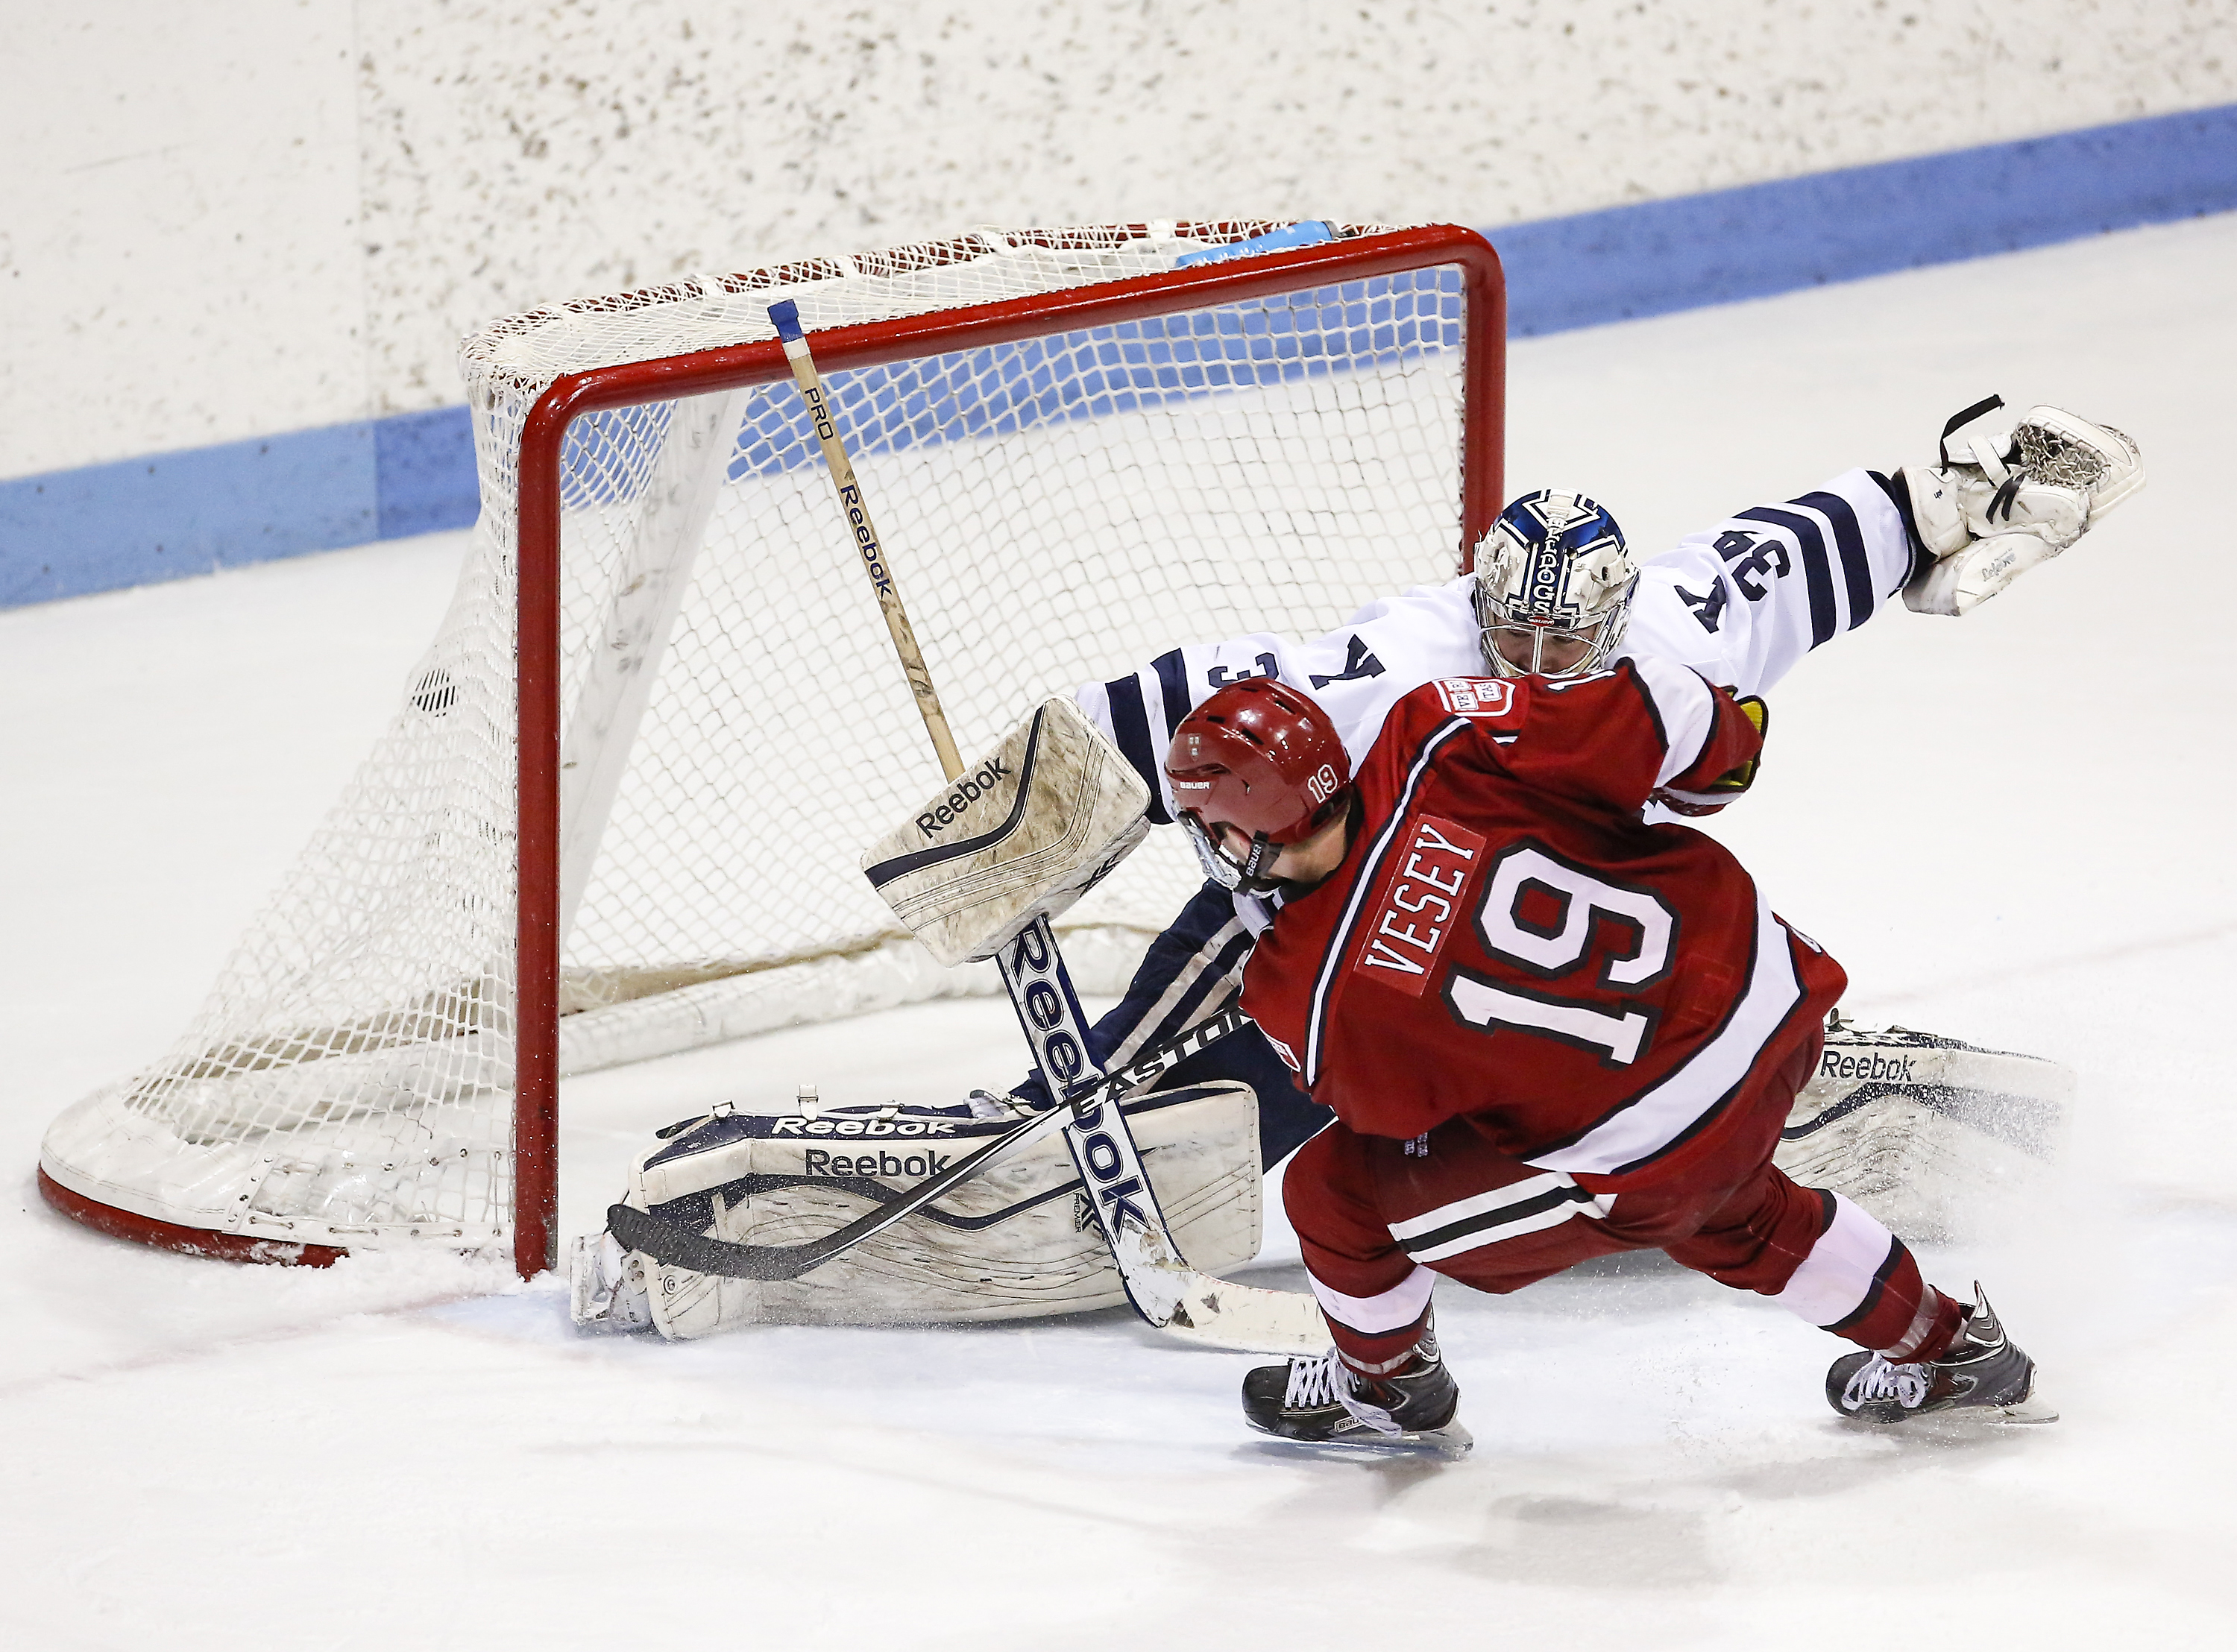 Jimmy Vesey's double overtime goal gave Harvard a 3-2 win over Yale on Sunday night in the ECAC Hockey Quarterfinals.